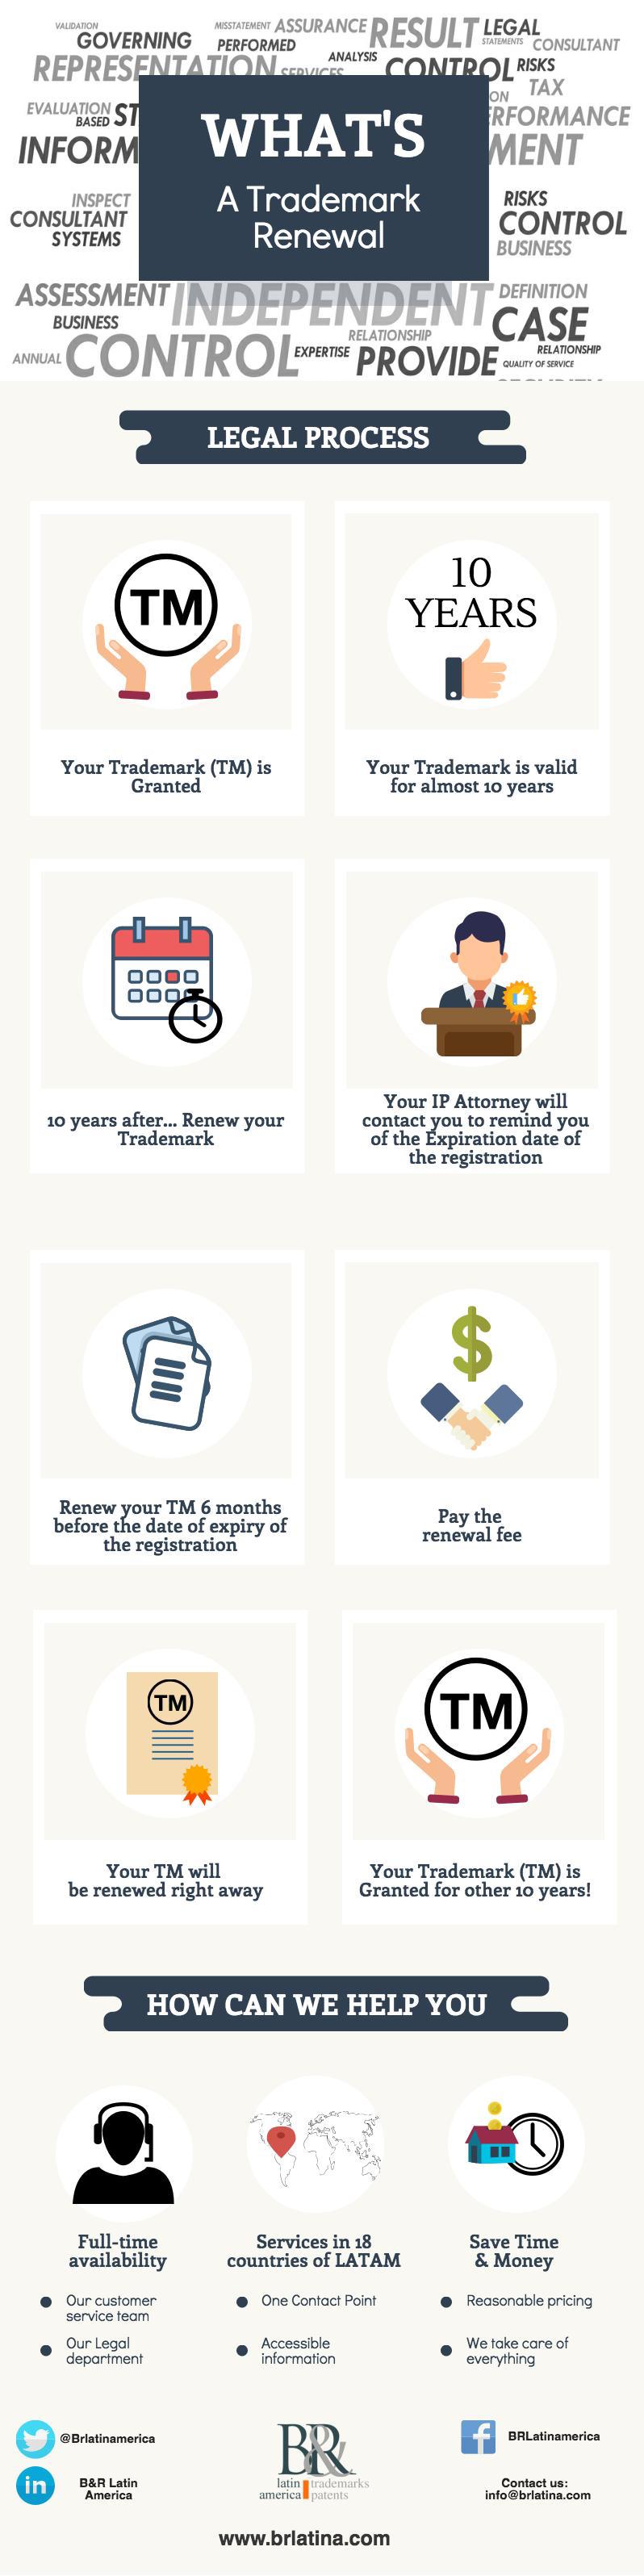 Here's a quick summary of what is the process you should do to file a Trademark Renewal.